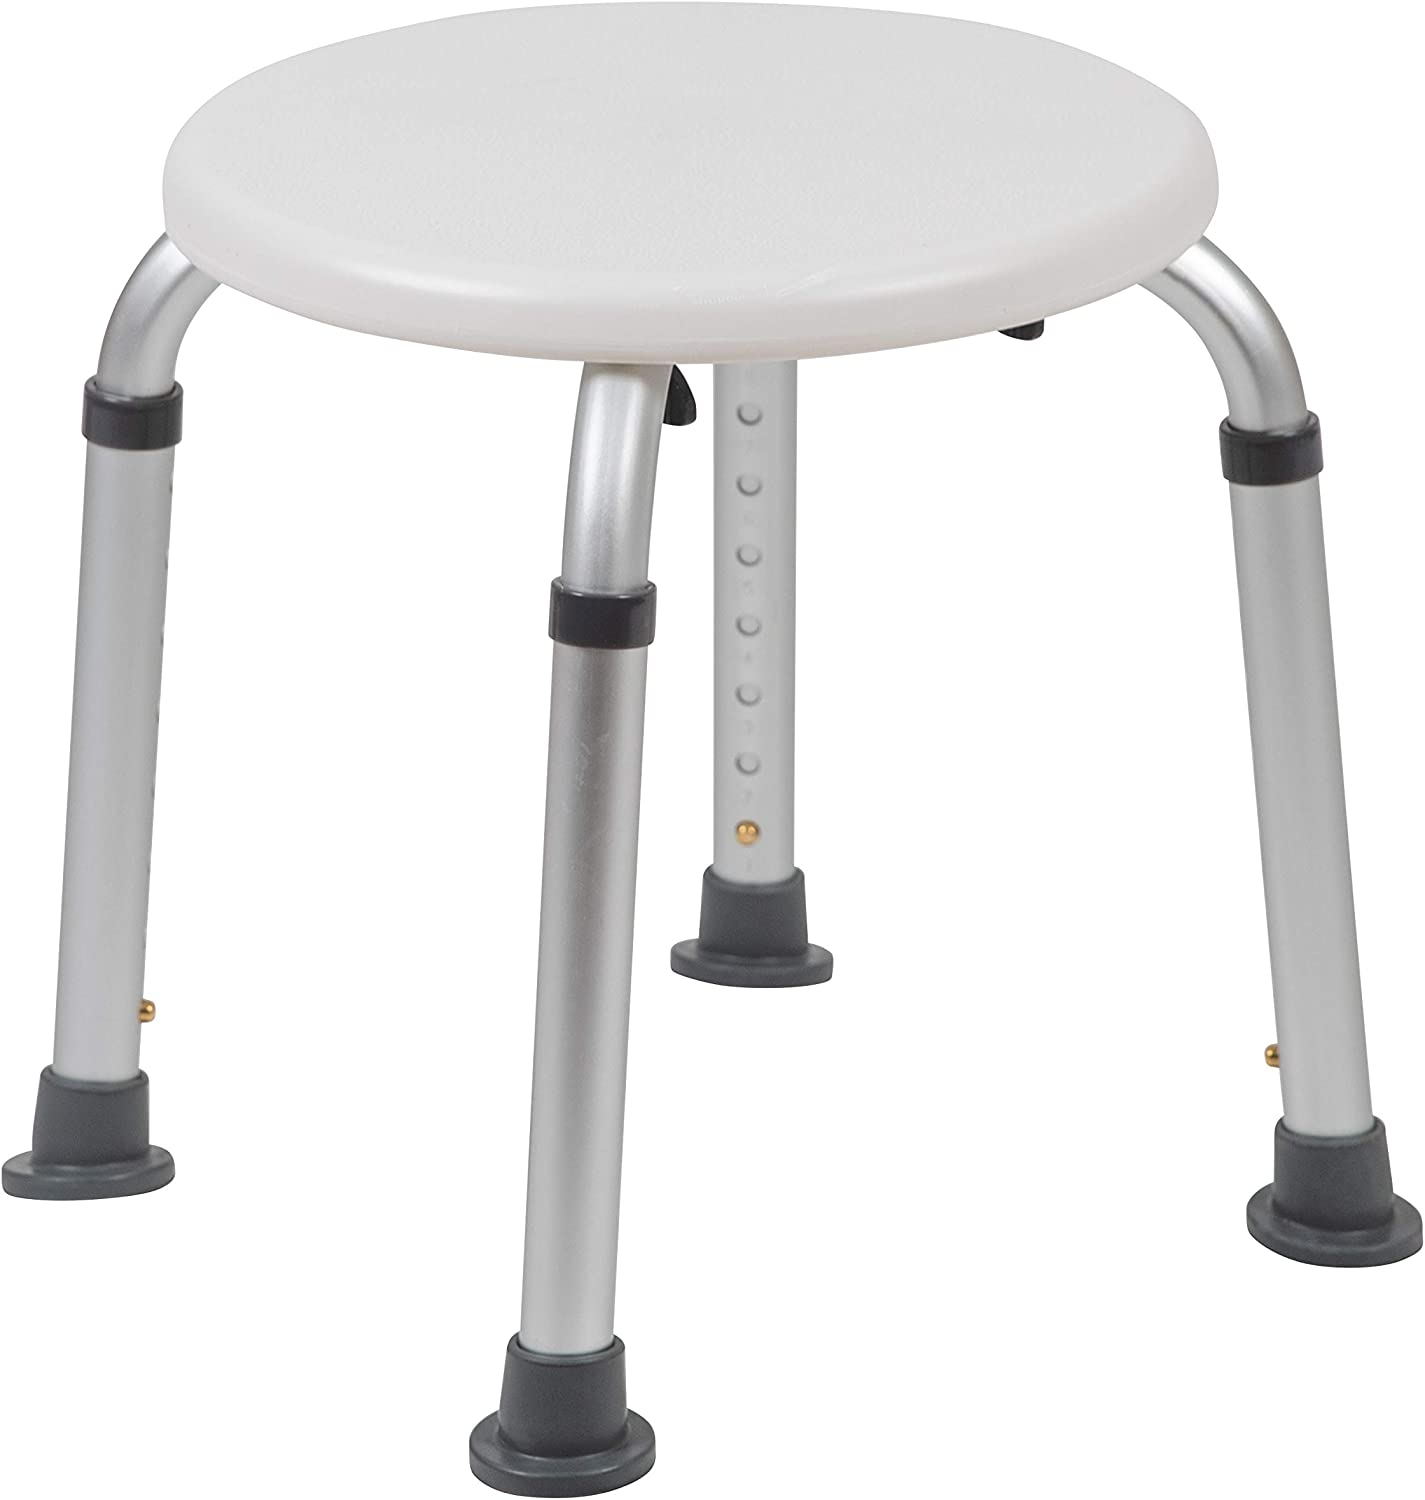 Flash Furniture HERCULES Series Tool-Free and Quick Assembly, 300 Lb. Capacity, Adjustable White Bath & Shower Stool